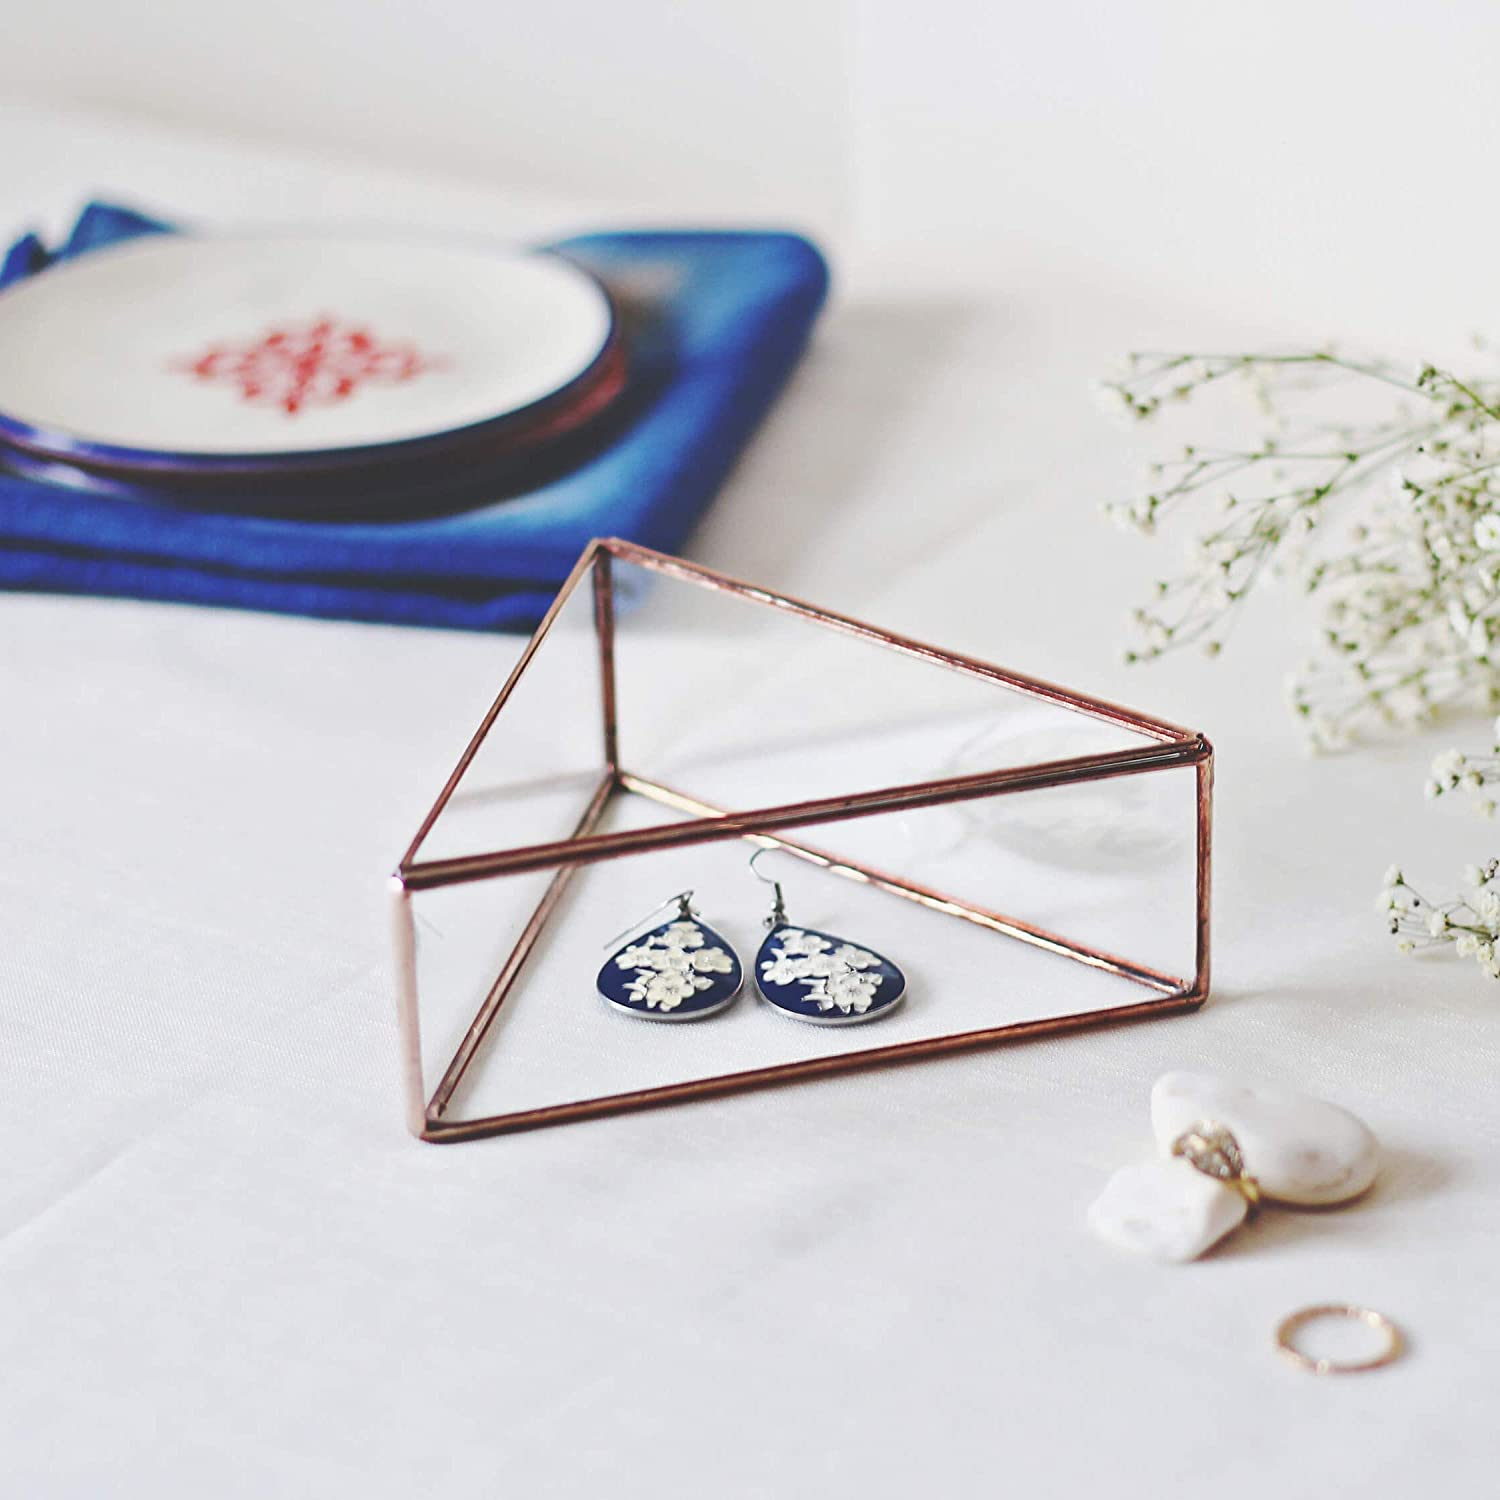 Waen Jewelry Box Collection Small Glass Jewelry Display Box with Lid - Triangle (Copper, Silver, Black)